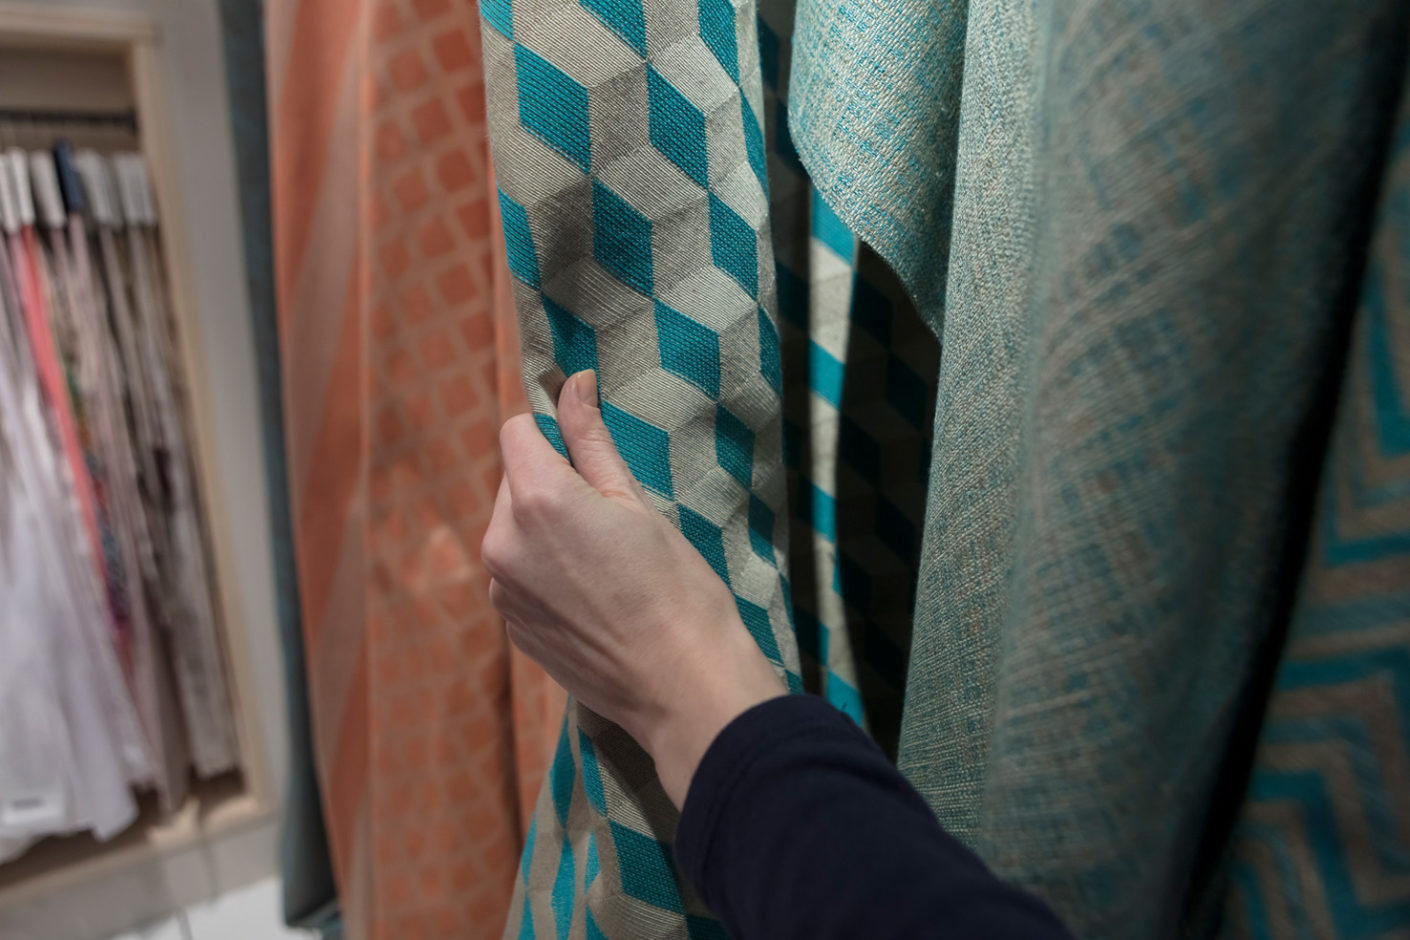 At Heimtextil, some 400 of the 3.000 exhibitors will showcase the largest international selection of contract textiles.